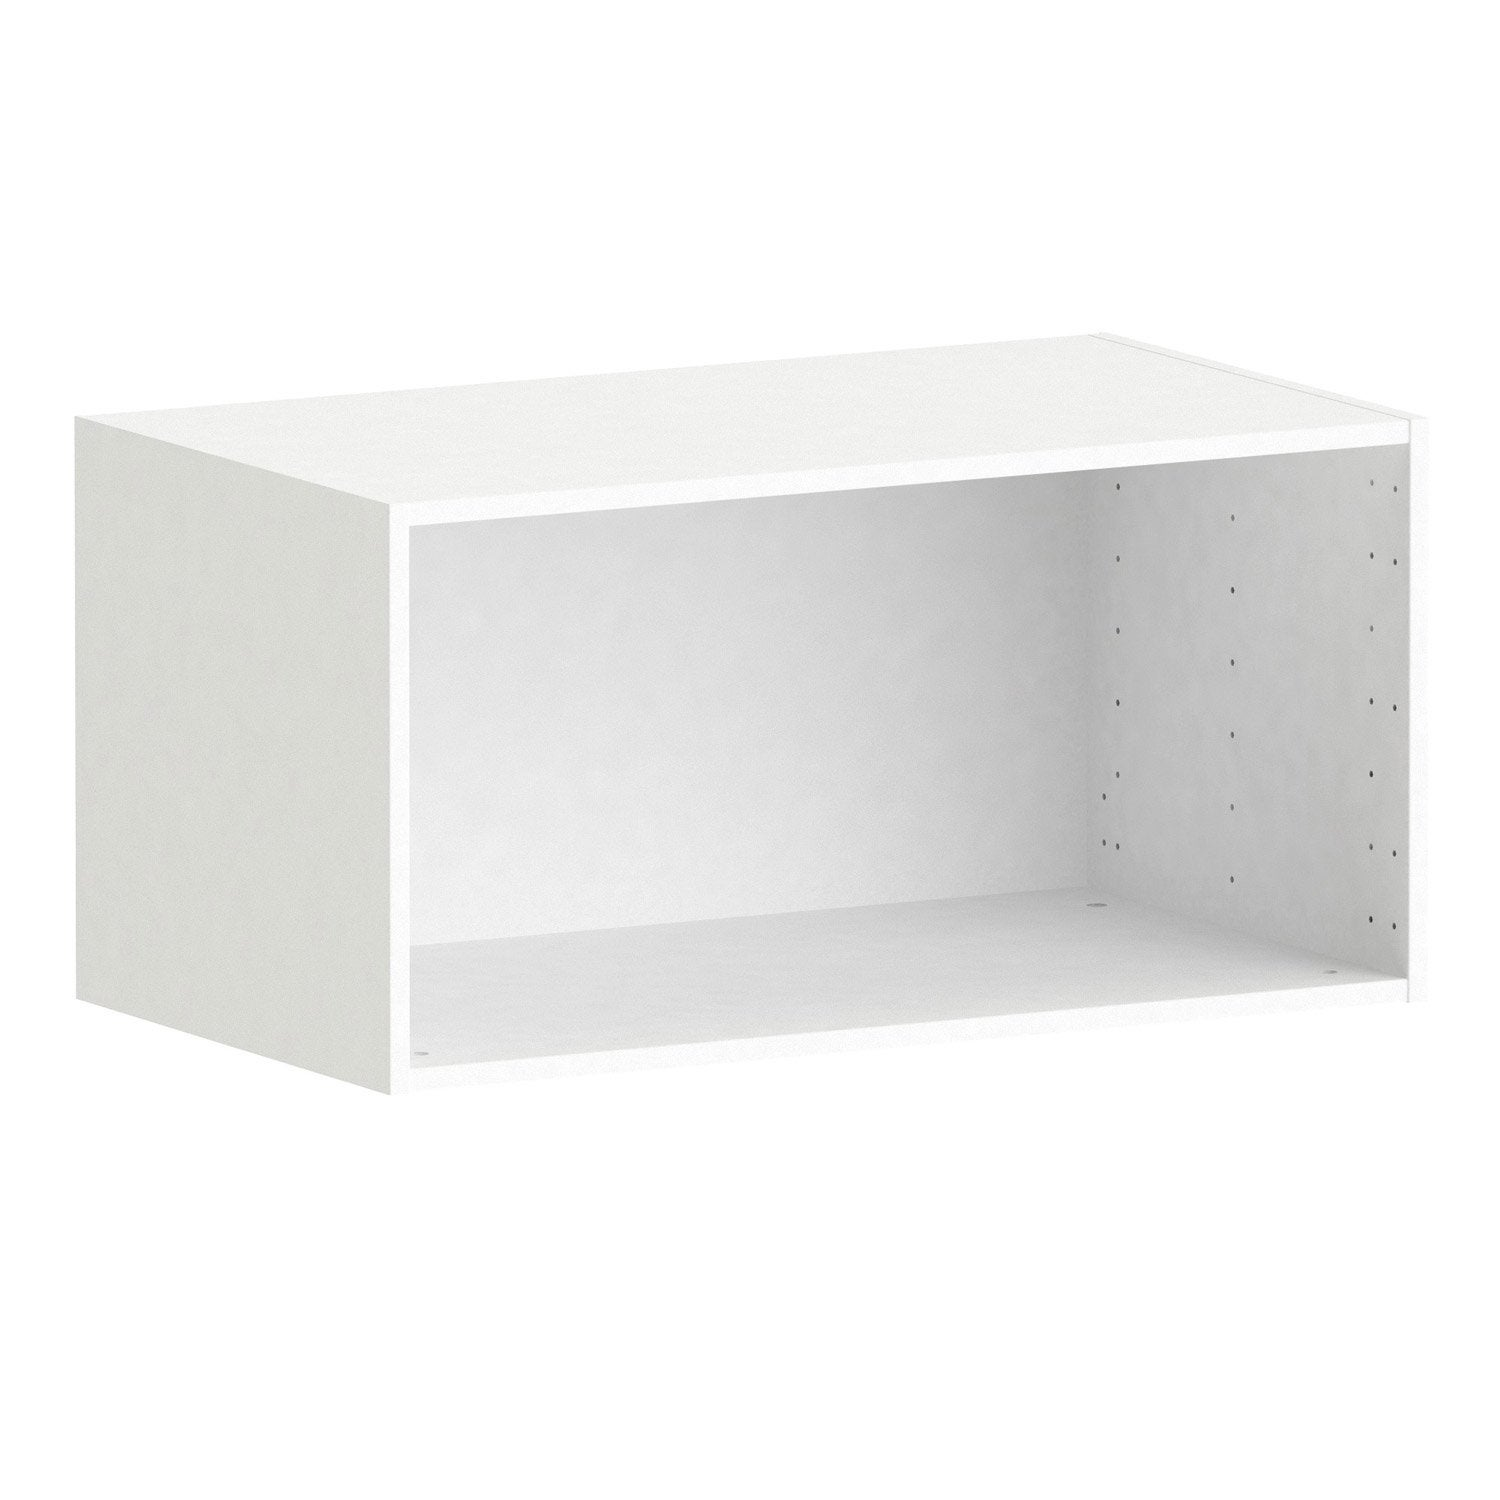 Caisson spaceo home 40 x 80 x 45 cm blanc leroy merlin for Meuble 60x40